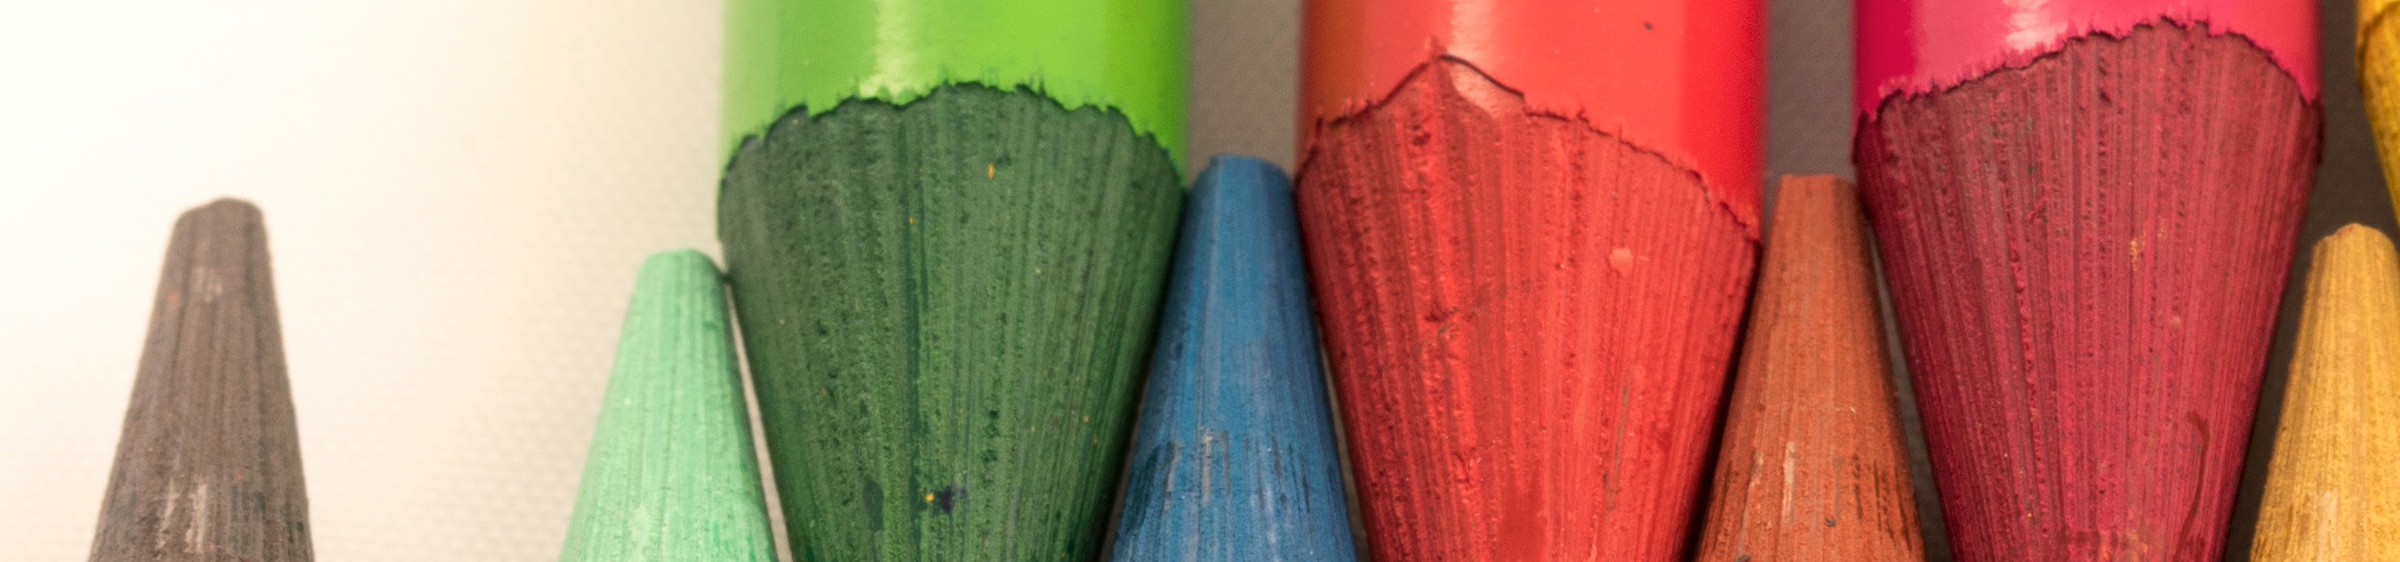 Different colours of crayons